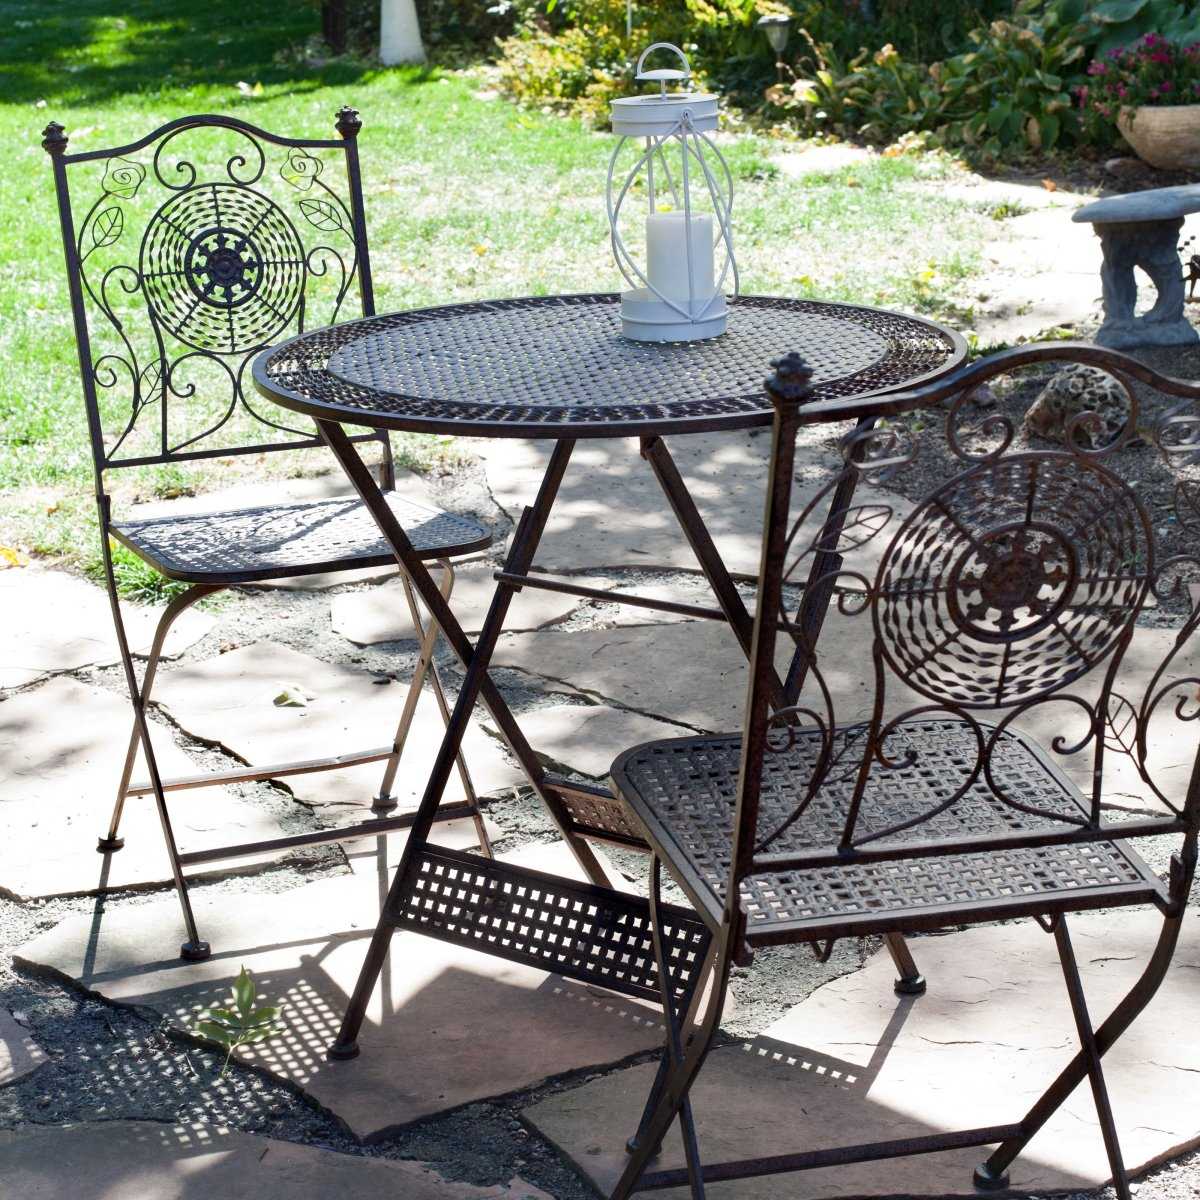 3-Piece Folding Outdoor Patio Furniture Bistro Set in Antiqued Iron, 3PAIFBS199 :  Create a romantic little tea time for two in just seconds with this 3-Piece Folding Outdoor Patio Furniture Bistro Set in Antiqued Iron. Crafted of Iron and finished in a aged-rustic Bronze, this 3-piece bistro set has an Old World flavor that's sure to set the mood for great conversation. The table and two bistro chairs are elaborately detailed and they all fold flat for easy storage. This means you can enjoy the ambiance of this set when you want to and enjoy the extra space on your patio when you need it. It's a snap to set up and take down. Iron construction and a aged-rustic Bronze finish; Striking table top features 2 decorative patterns; 2 armless bistro chairs with ornately decorated backs; All 3 pieces fold up flat for easy storage.